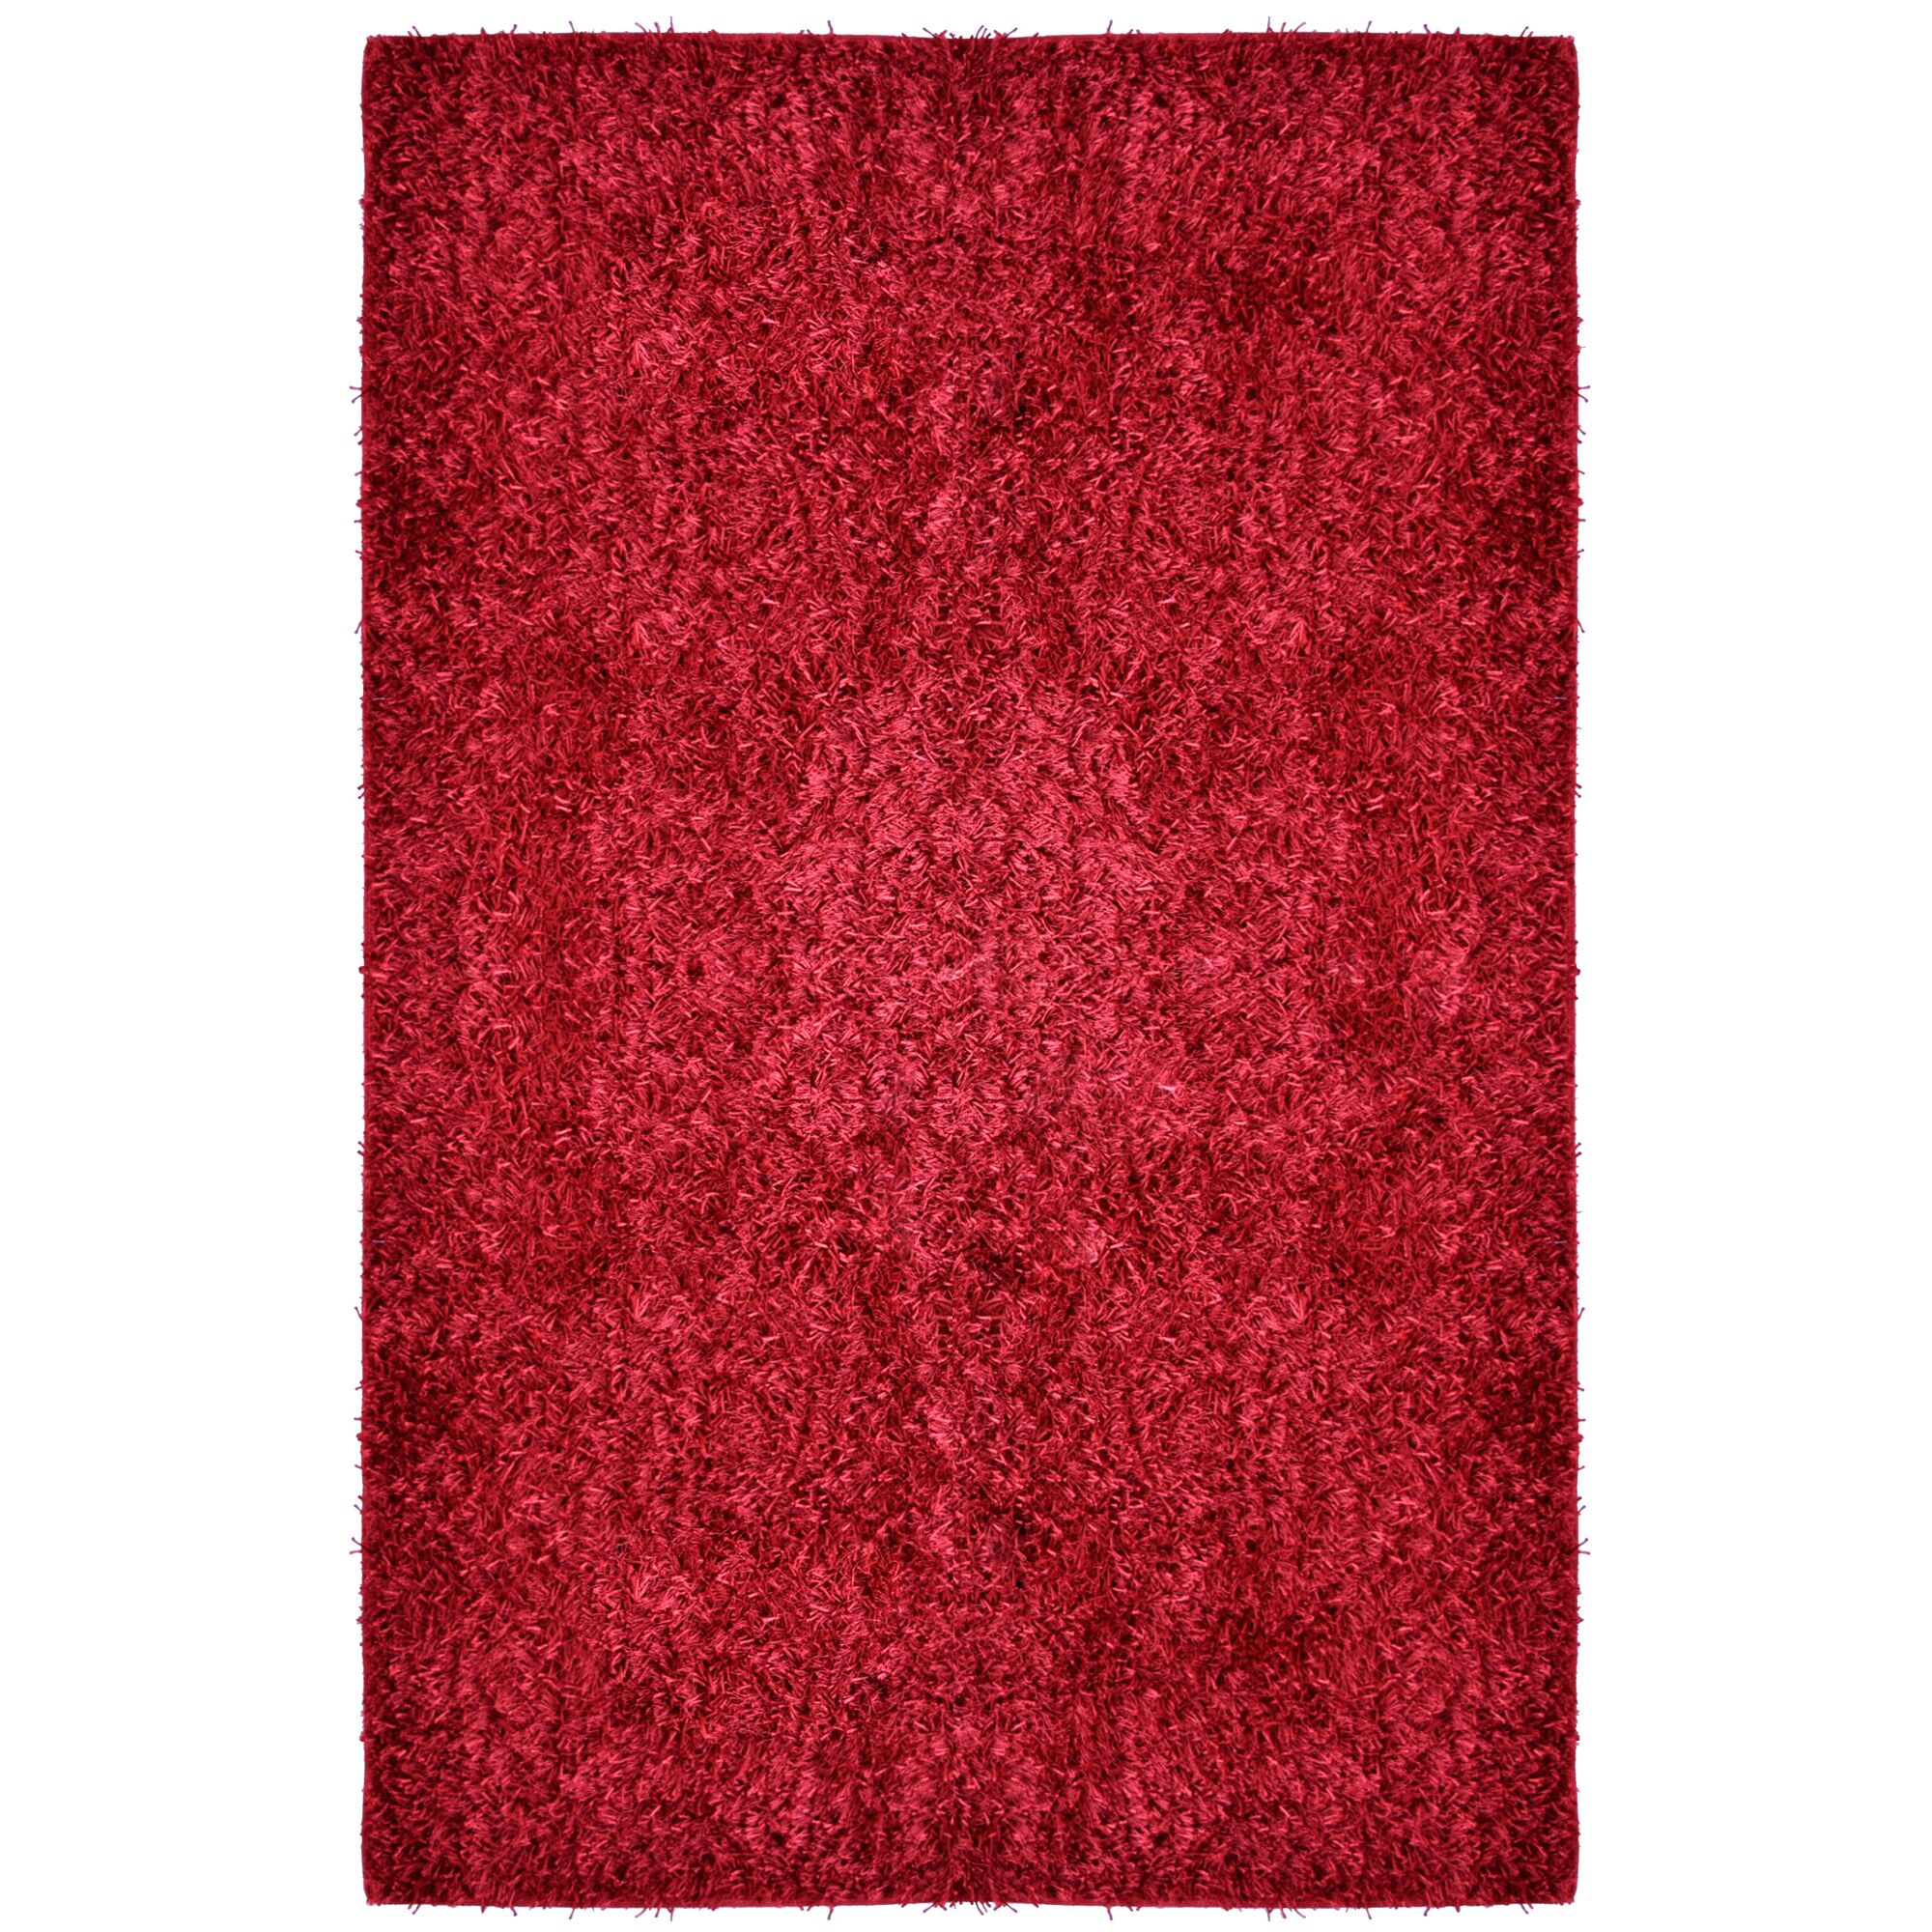 City Shag Red Area Rug Rug Size: 5' x 7'6